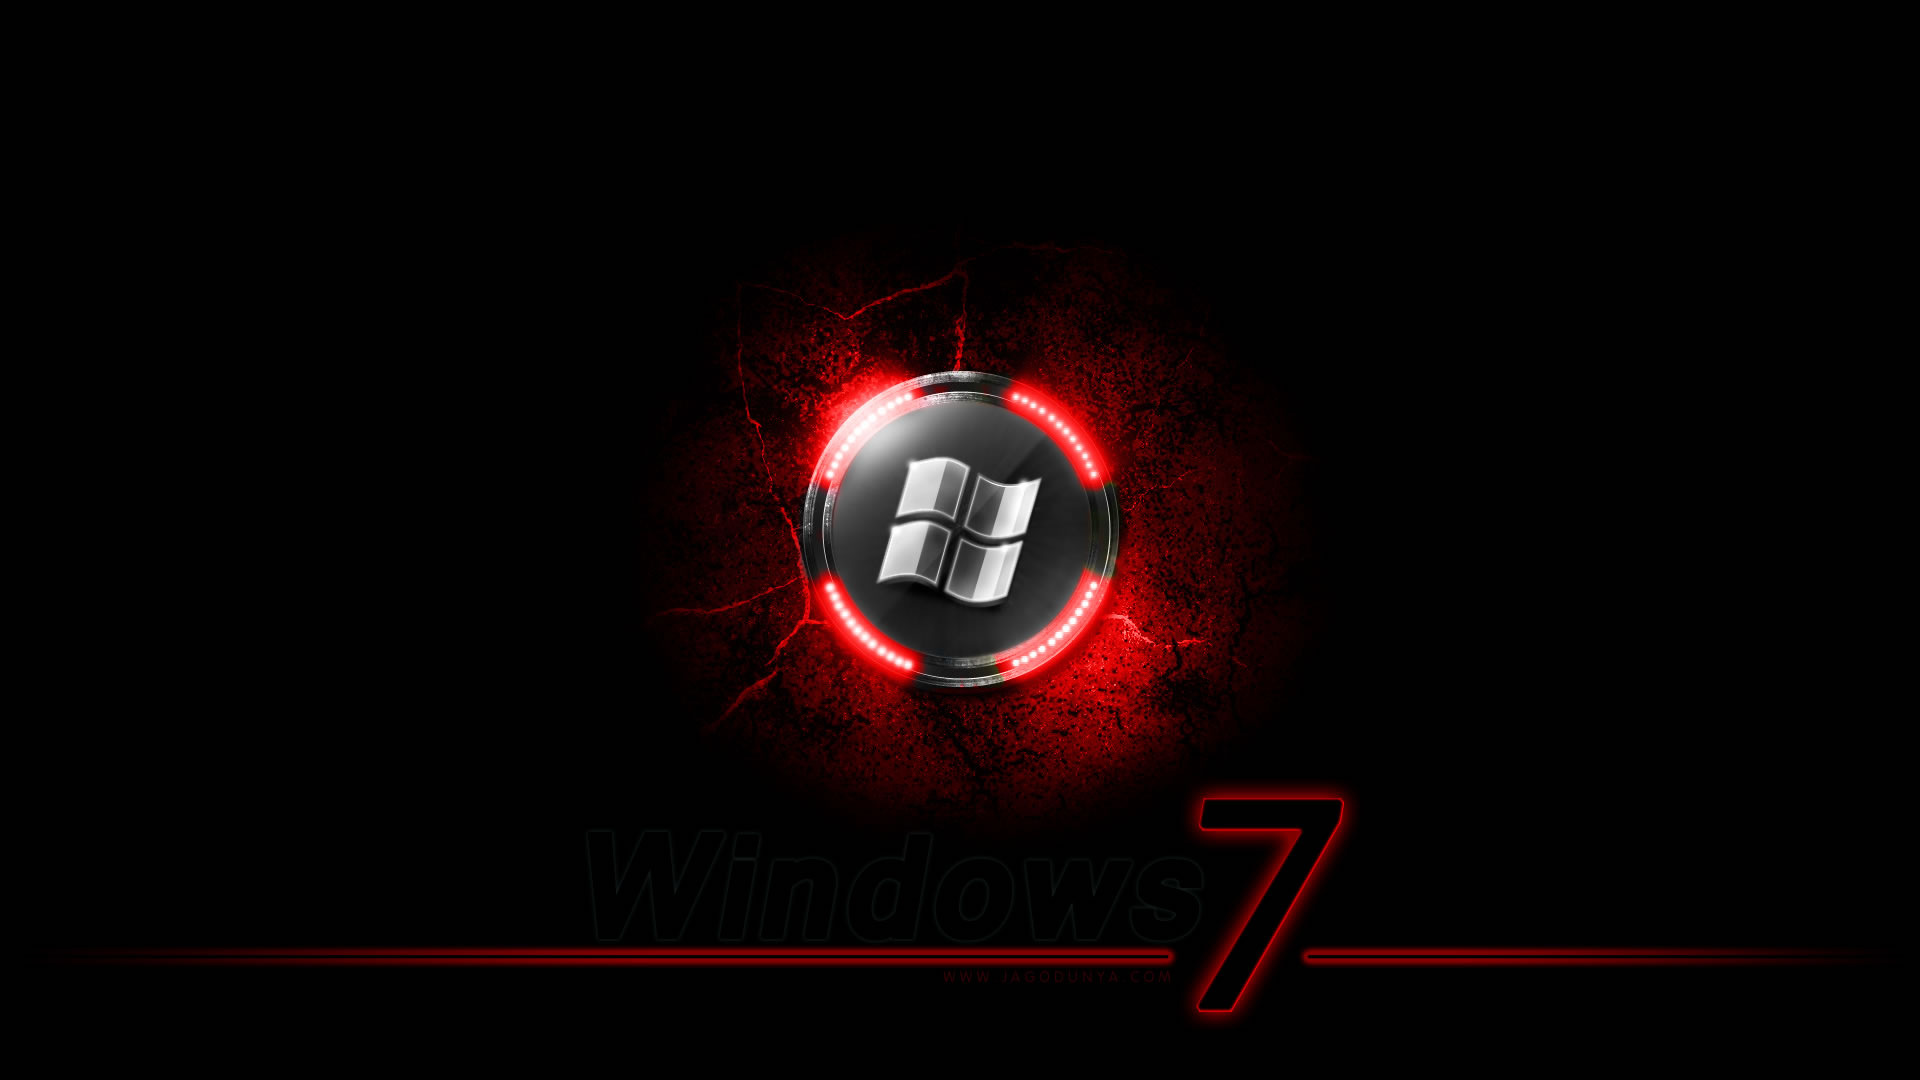 Black windows - Black Windows 7 Hd Wallpapers